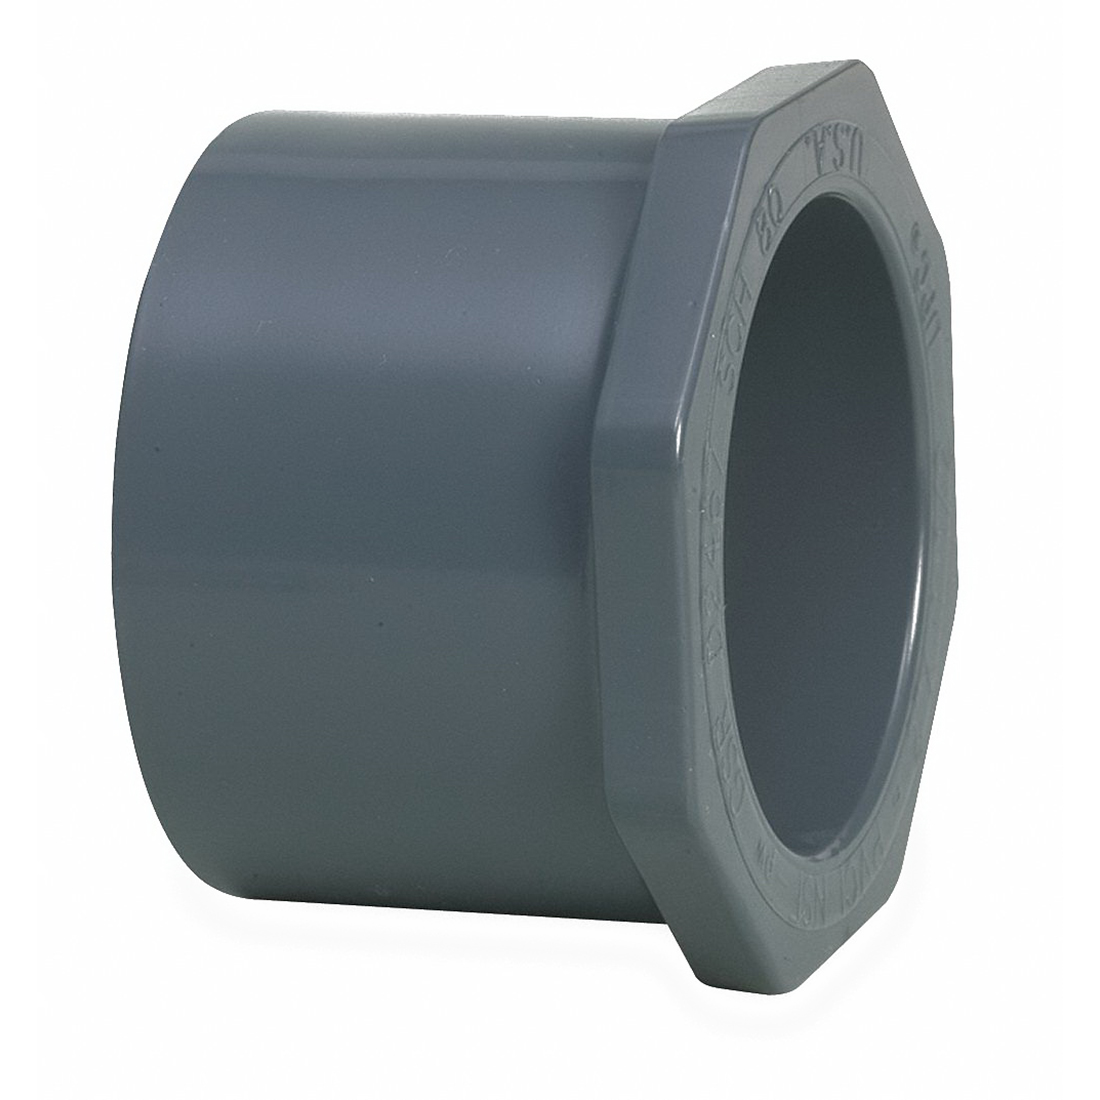 Gray PVC SCH 80 Flush Style Reducer Bushing, 4 in x 2 in, Spigot x Socket